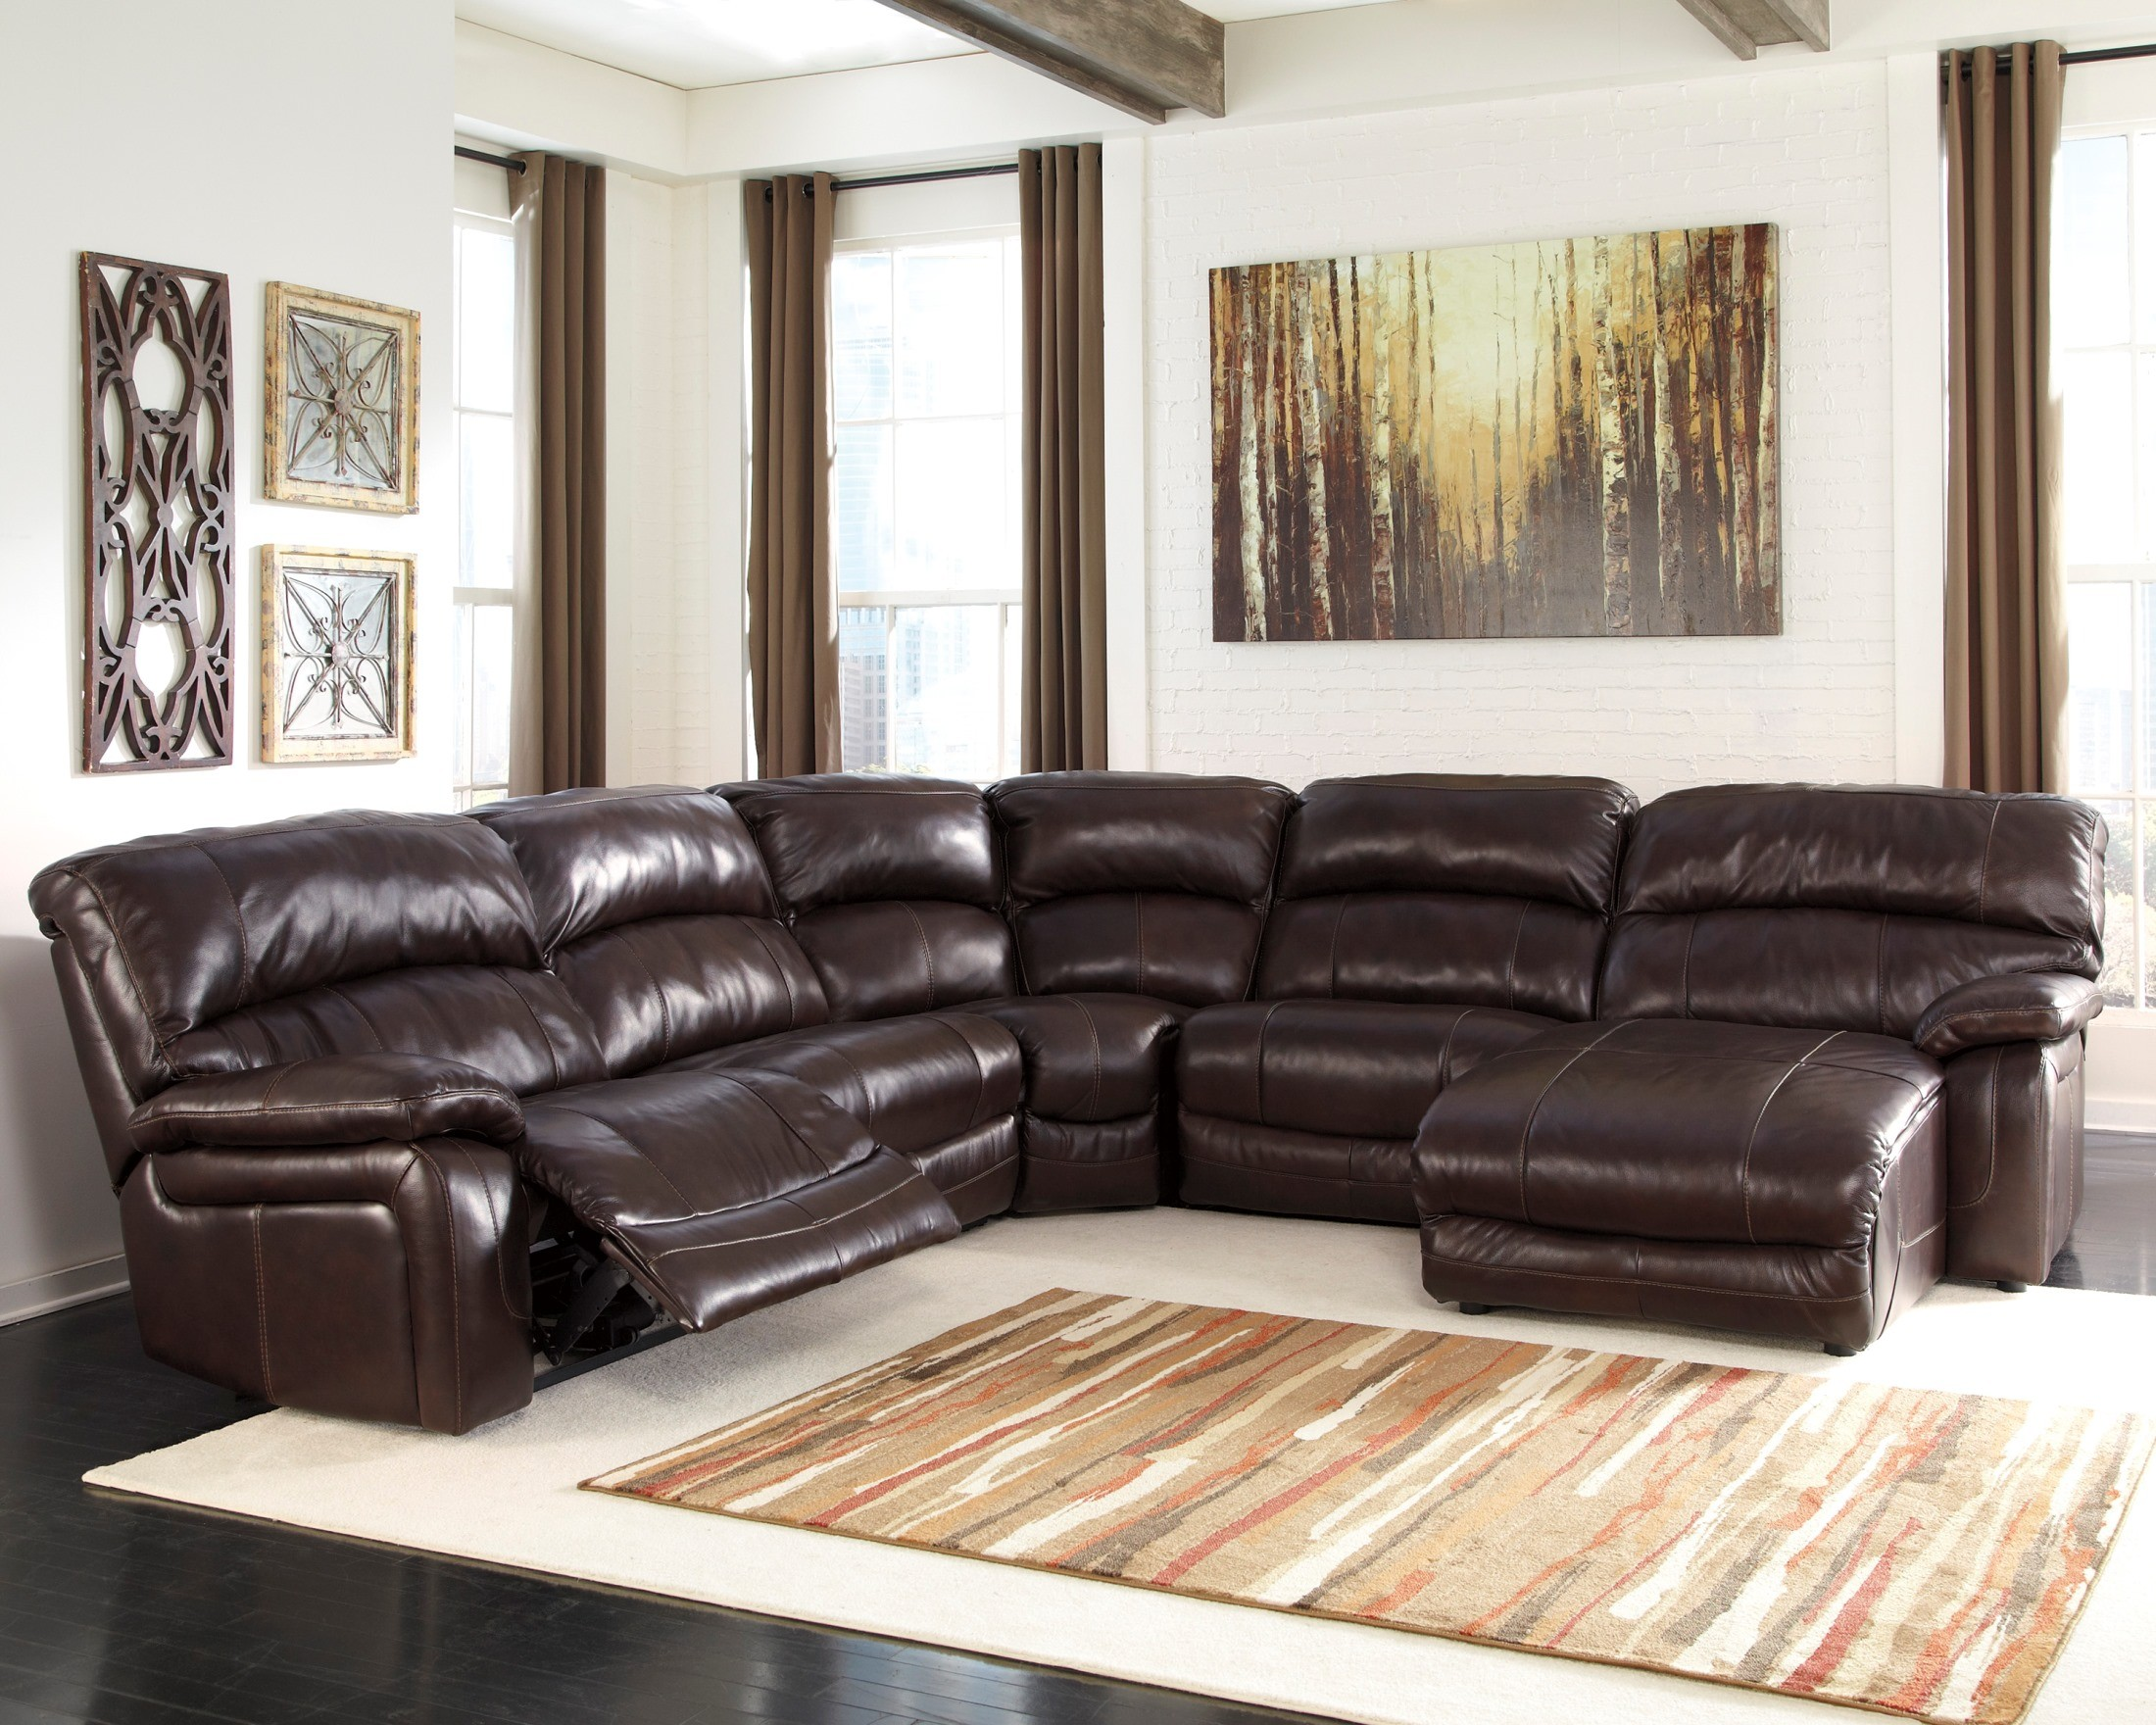 ... Power Reclining Sectional 422542. 422544 & Damacio Dark Brown RAF Power Reclining Sectional from Ashley ... islam-shia.org